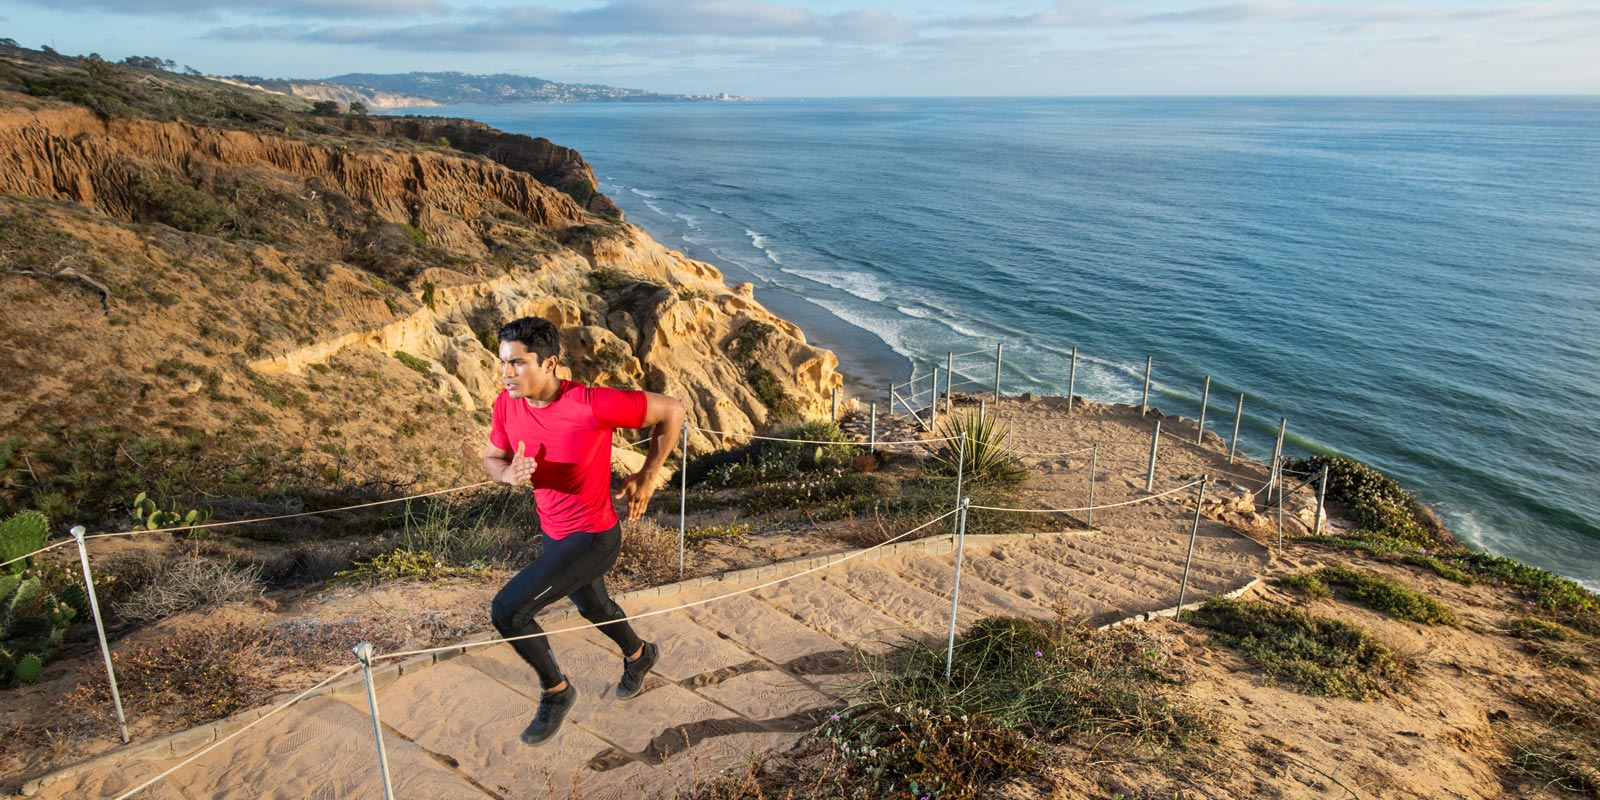 Run the trails of Torrey Pines State Natural Reserve